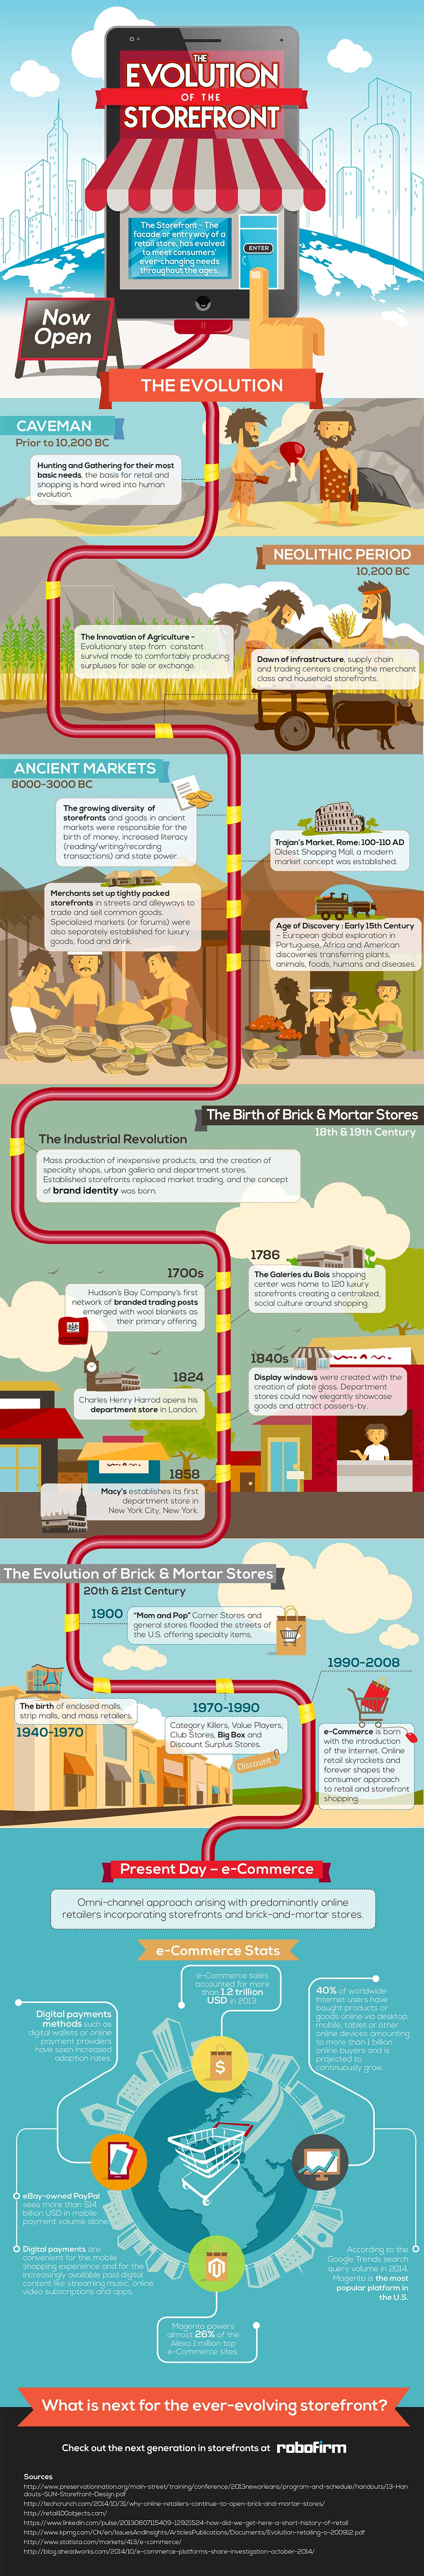 Evolution of the Storefront